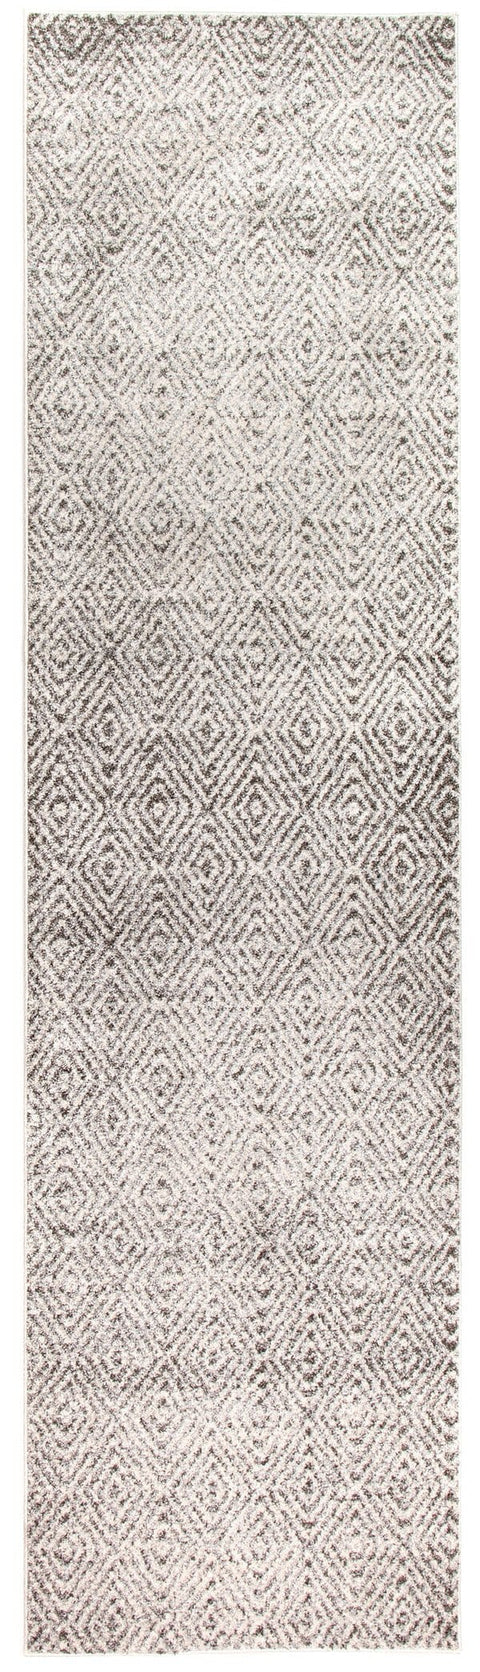 Oruro Ivory and Grey Diamond Tribal Pattern Runner